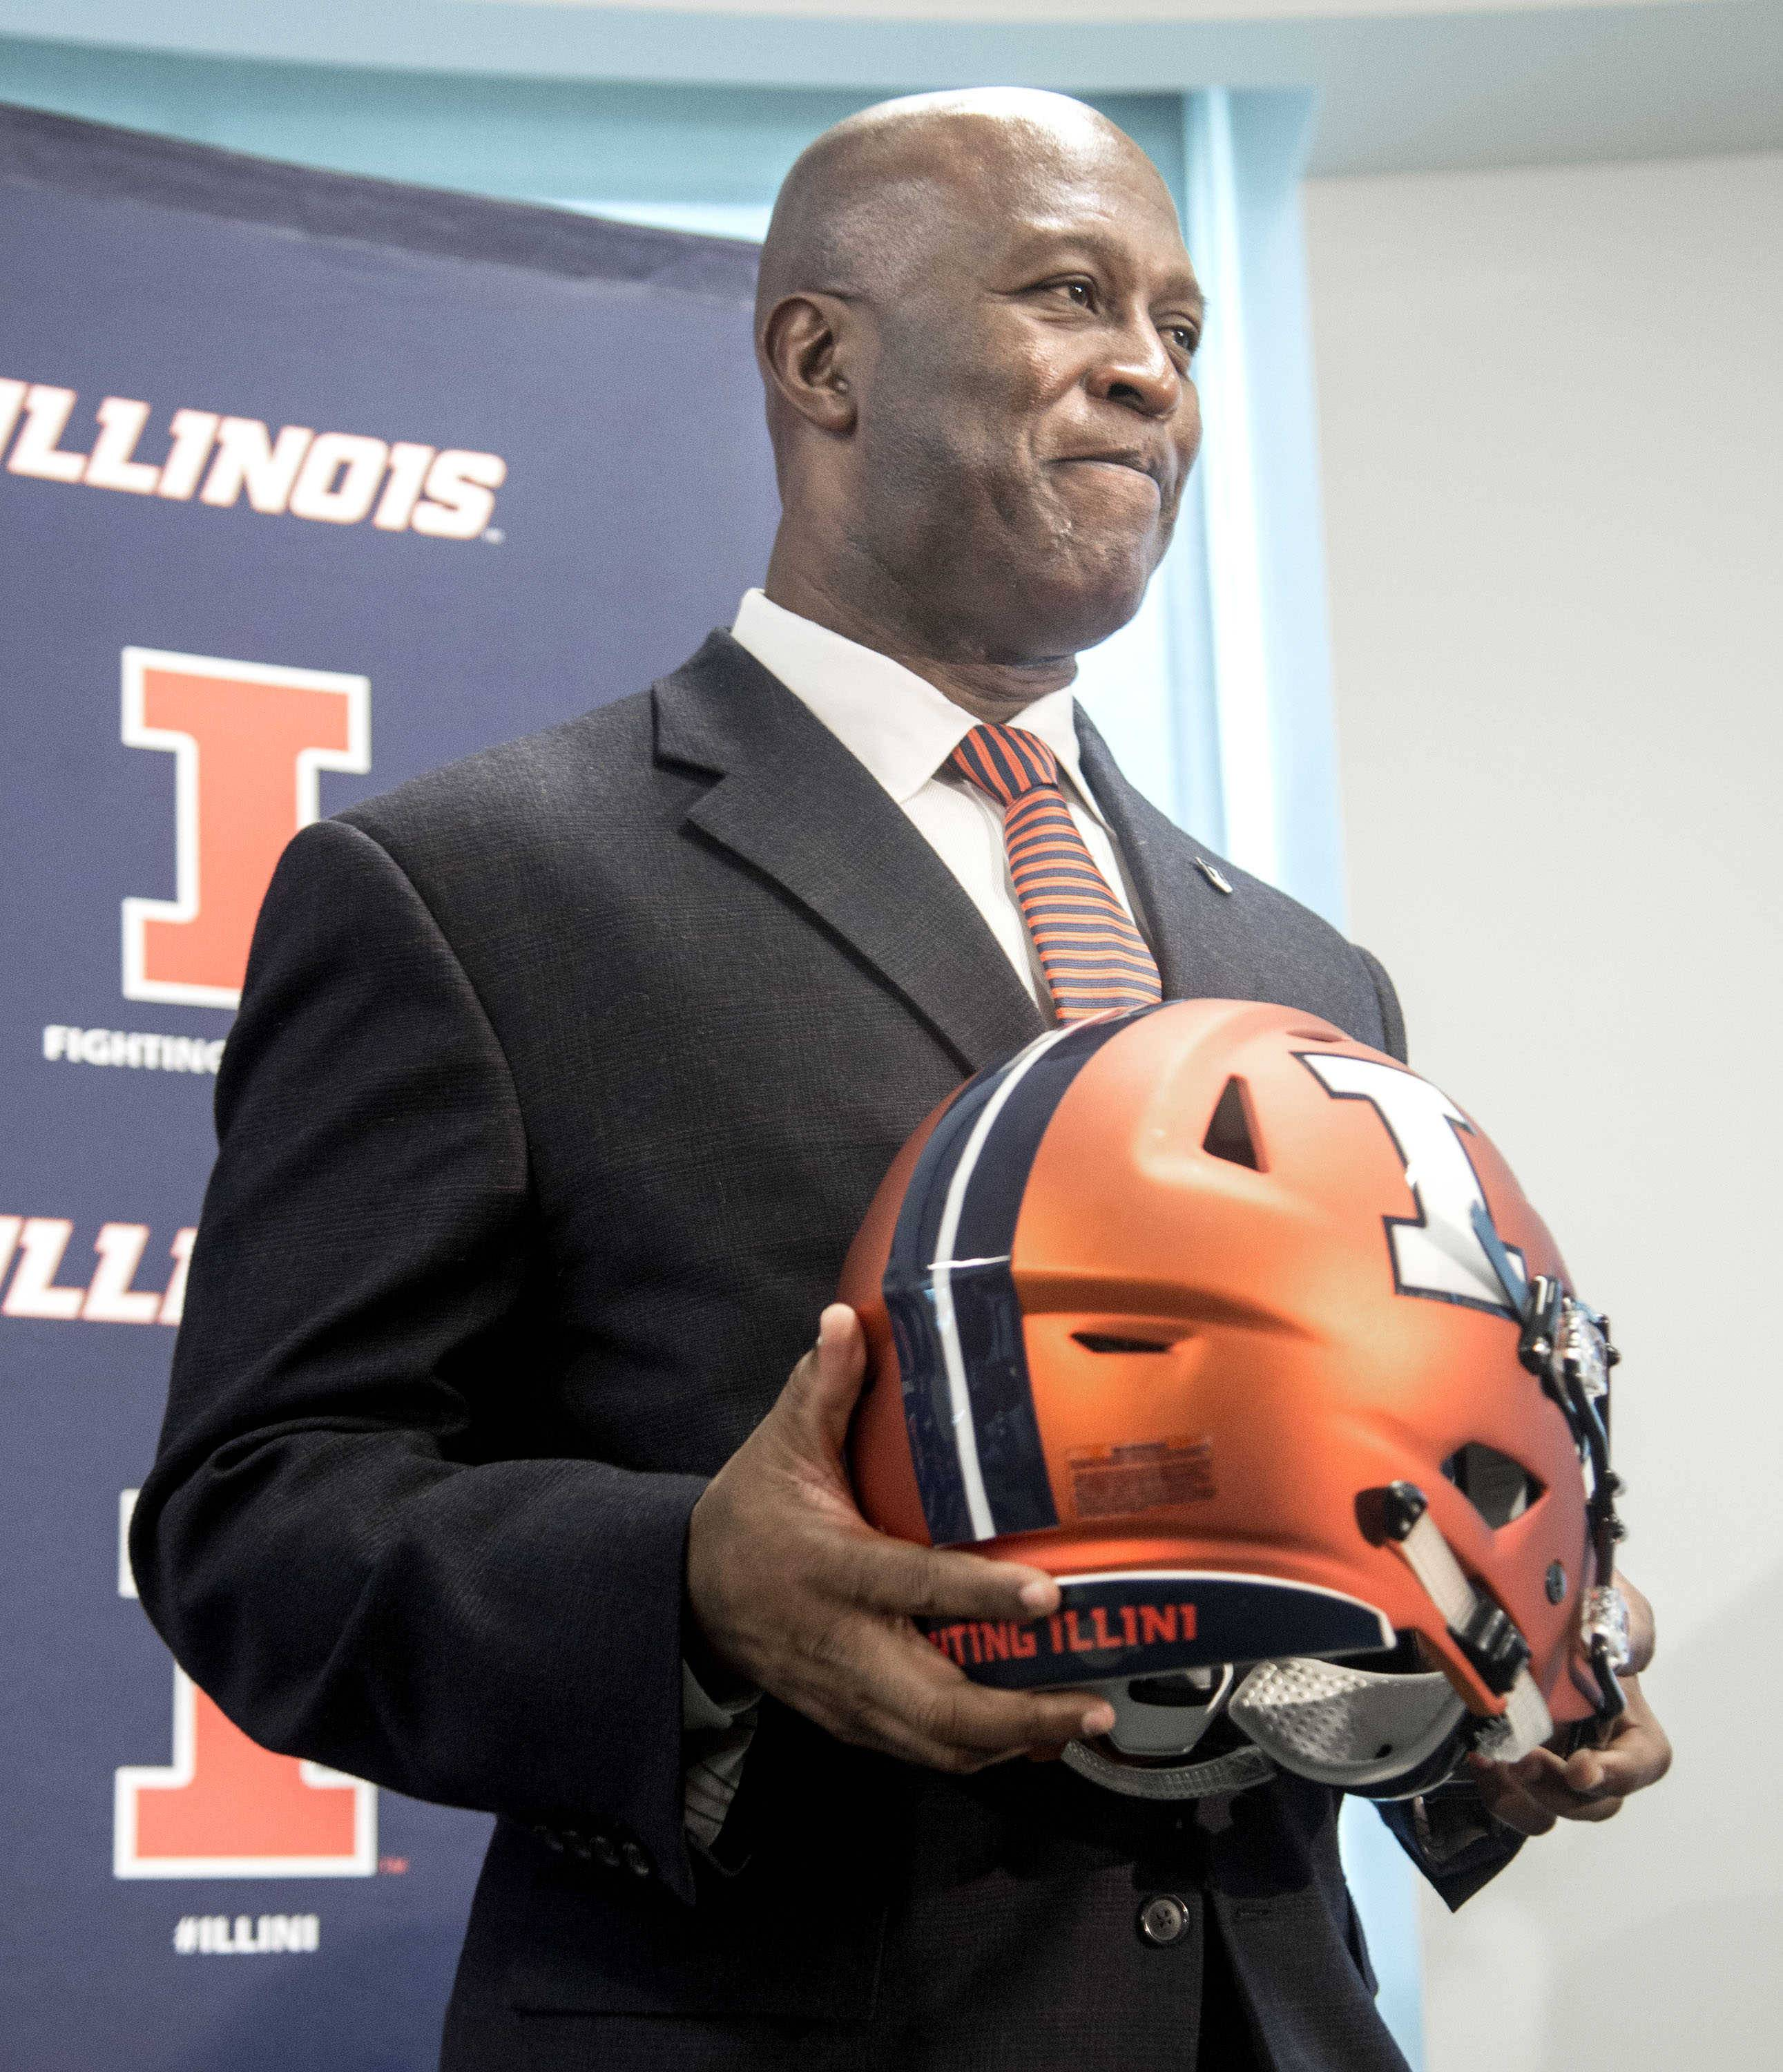 Lovie Smith takes a 'professional' approach with Illini